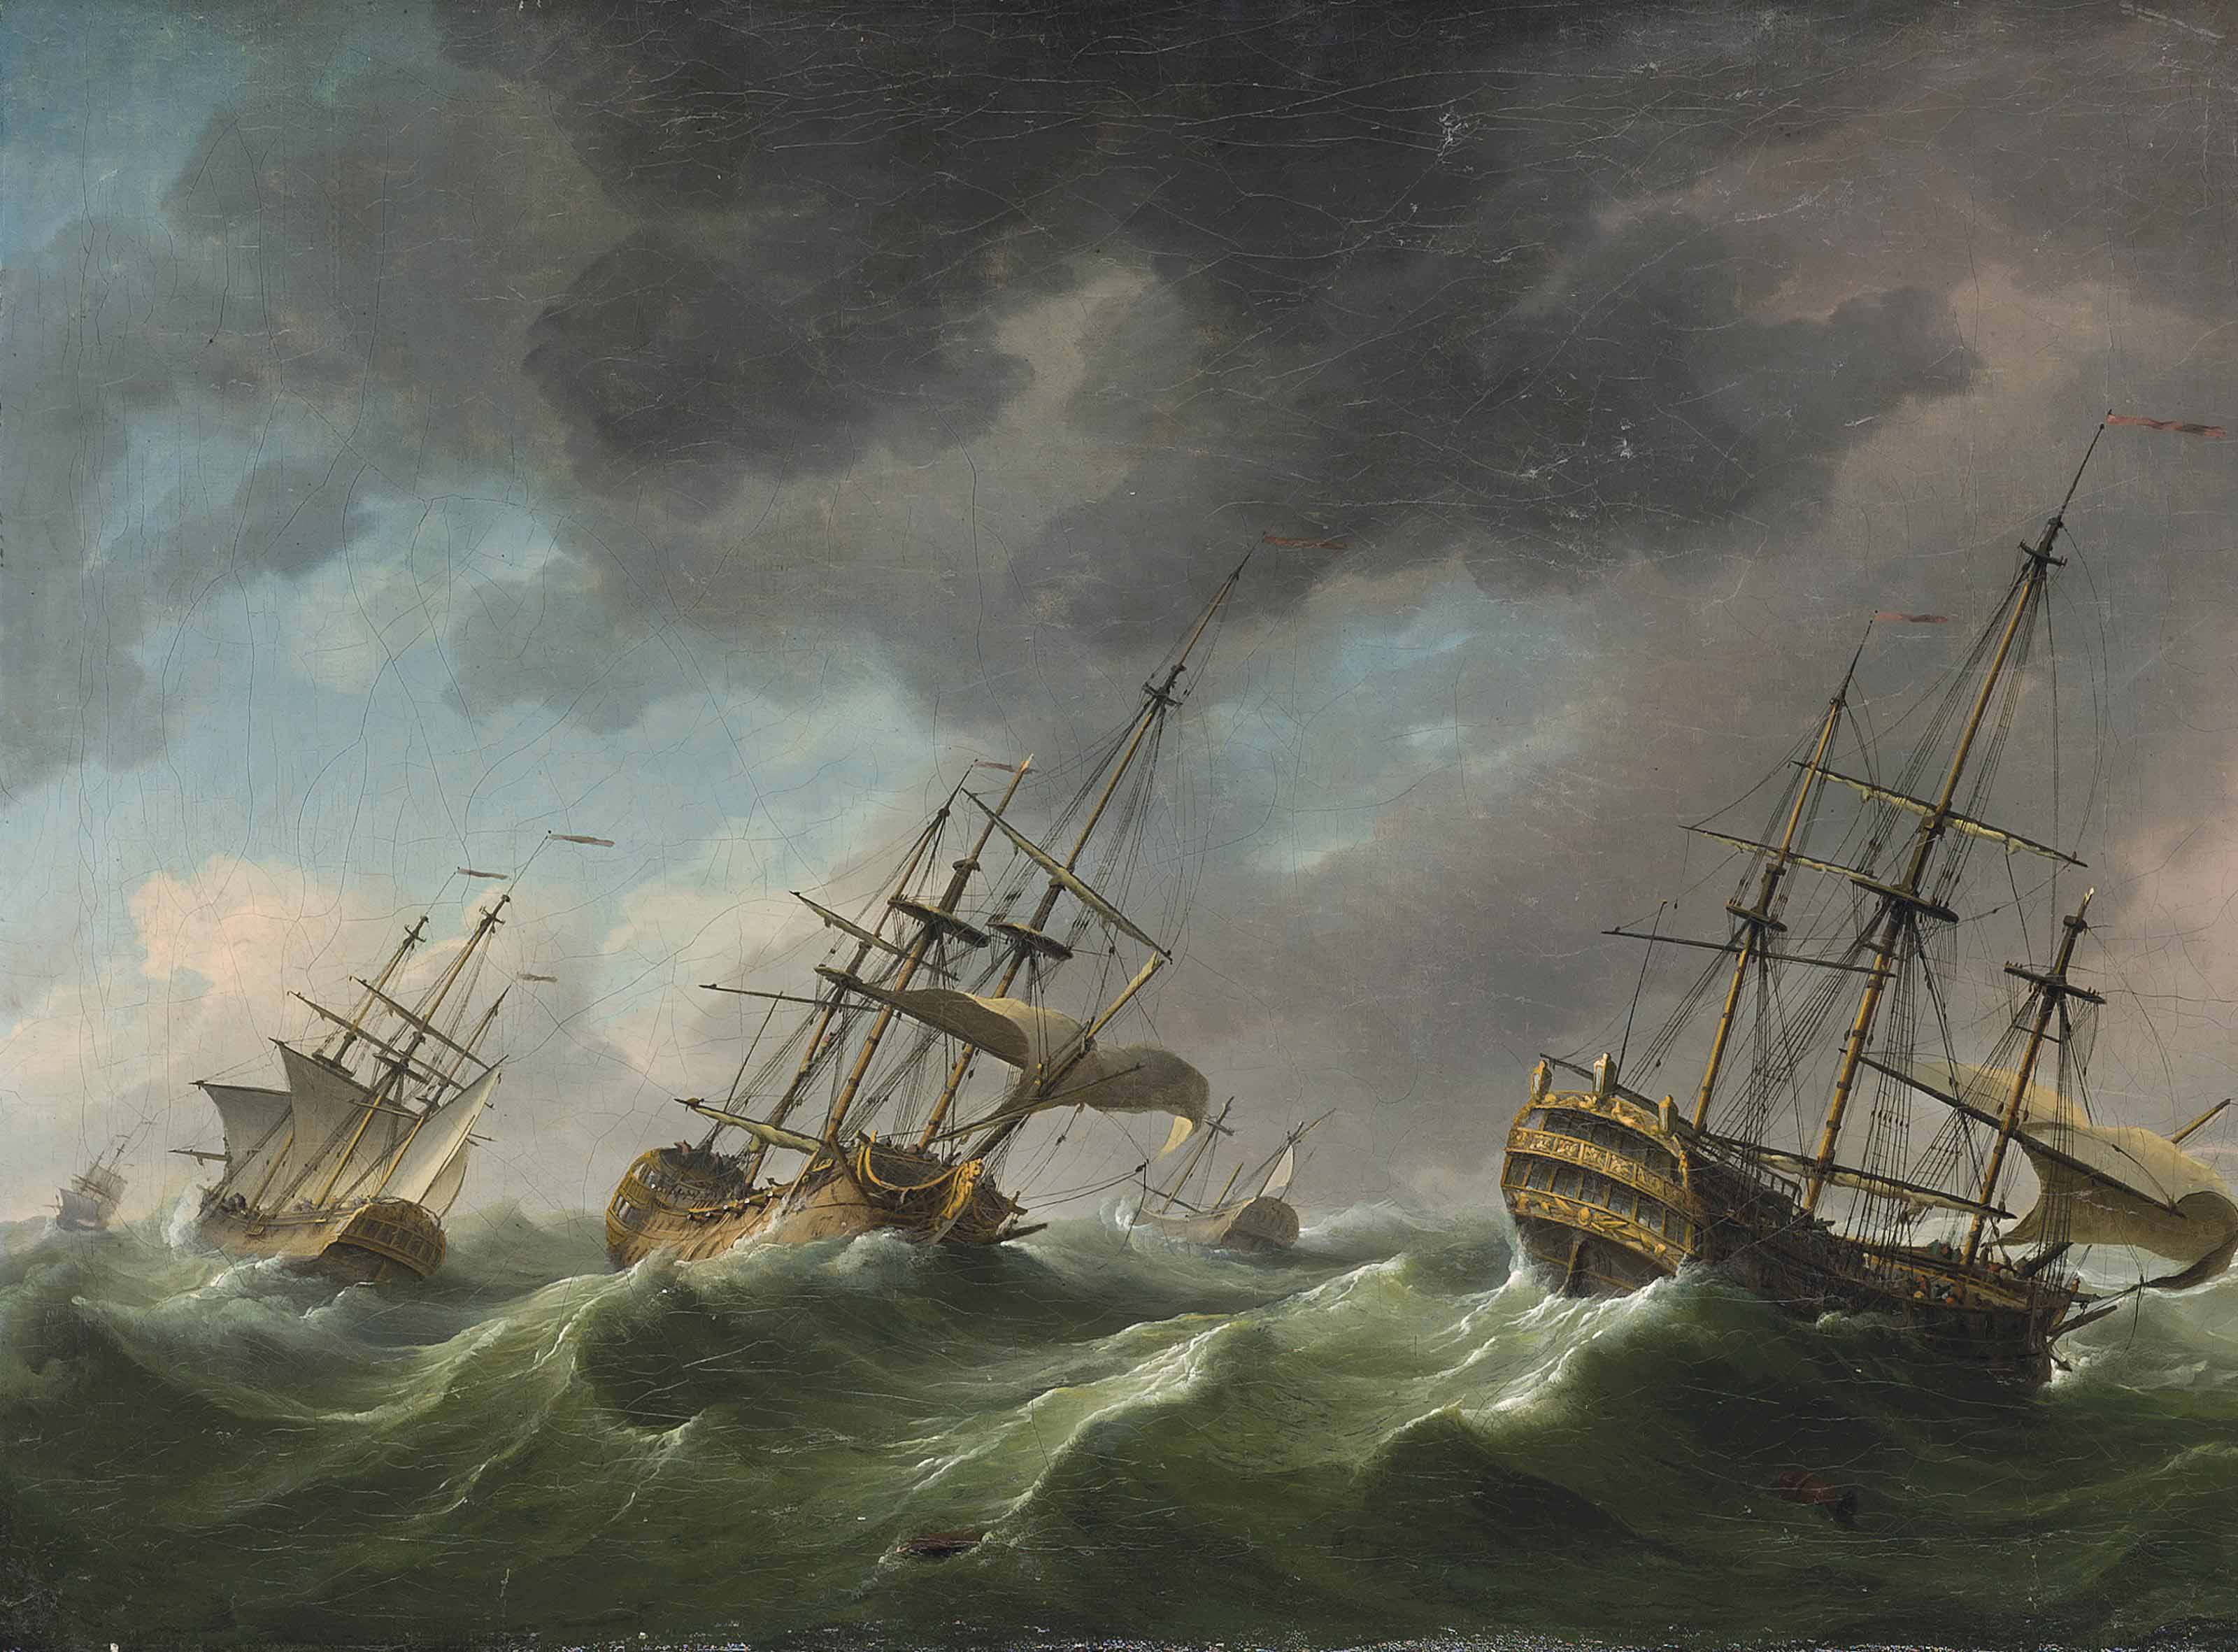 Men-o'-war reefed-down and riding out a gale